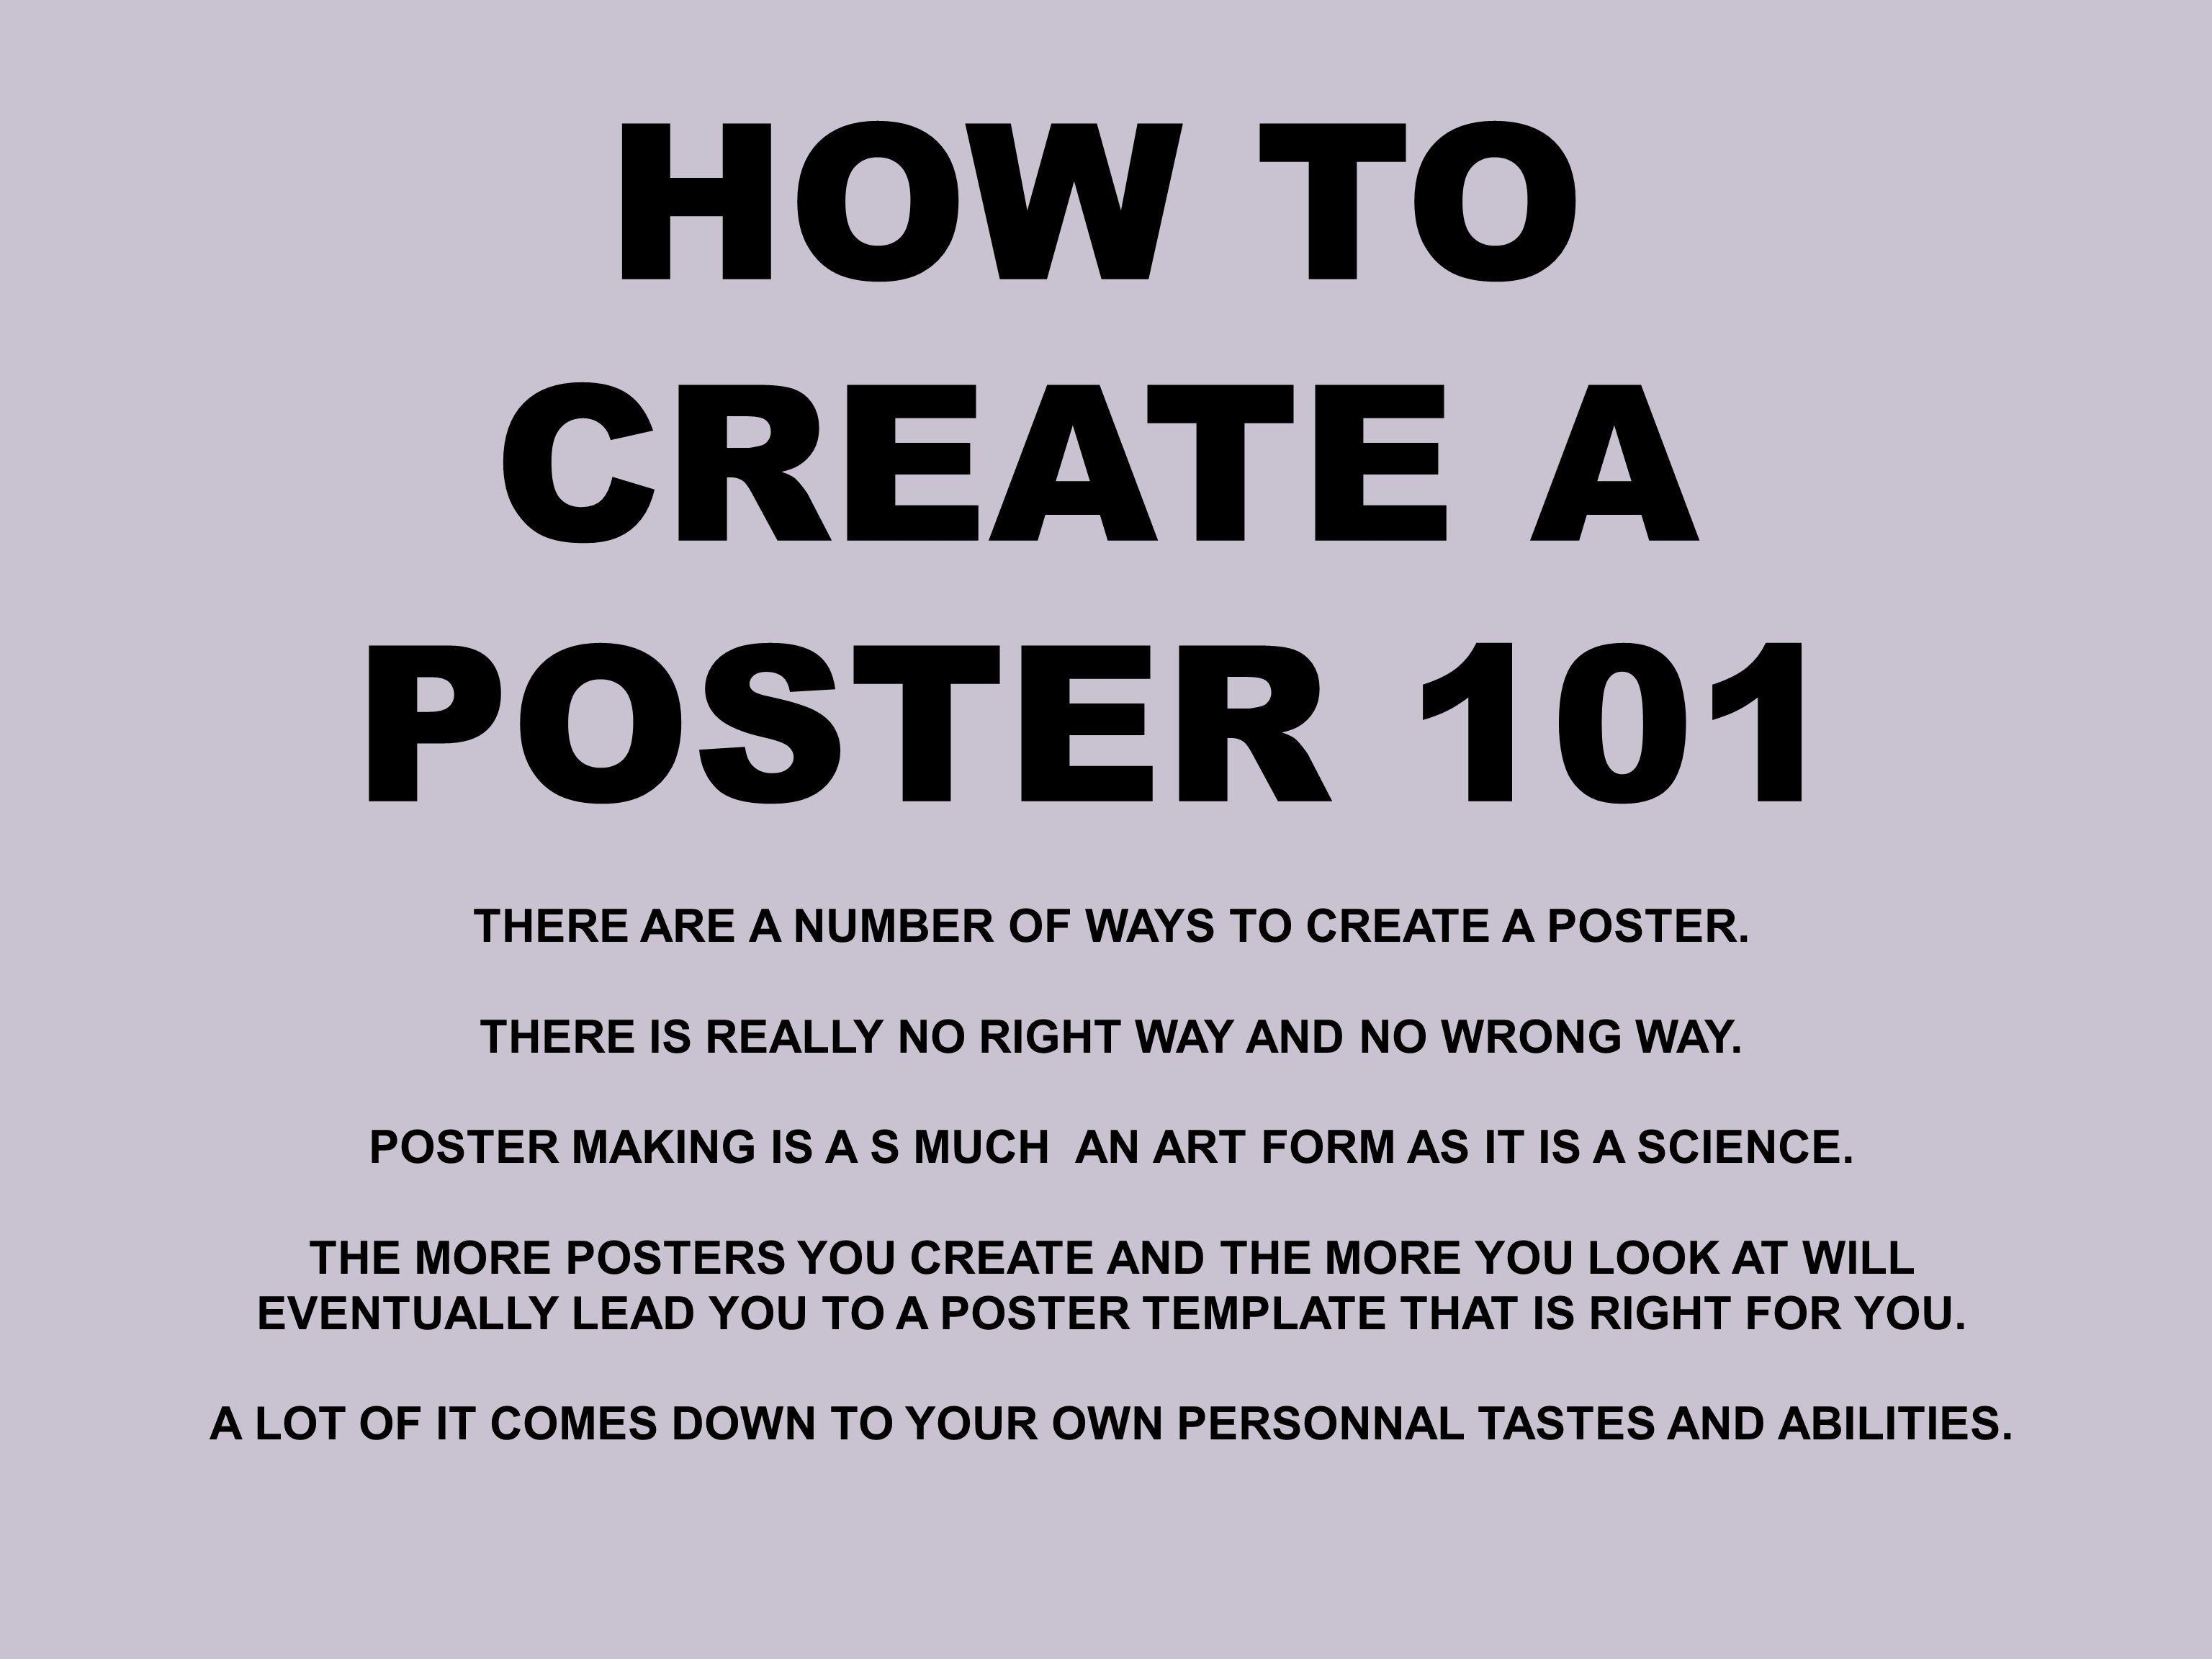 HOW TO CREATE A POSTER 101 THERE ARE A NUMBER OF WAYS TO CREATE A POSTER. THERE IS REALLY NO RIGHT WAY AND NO WRONG WAY.